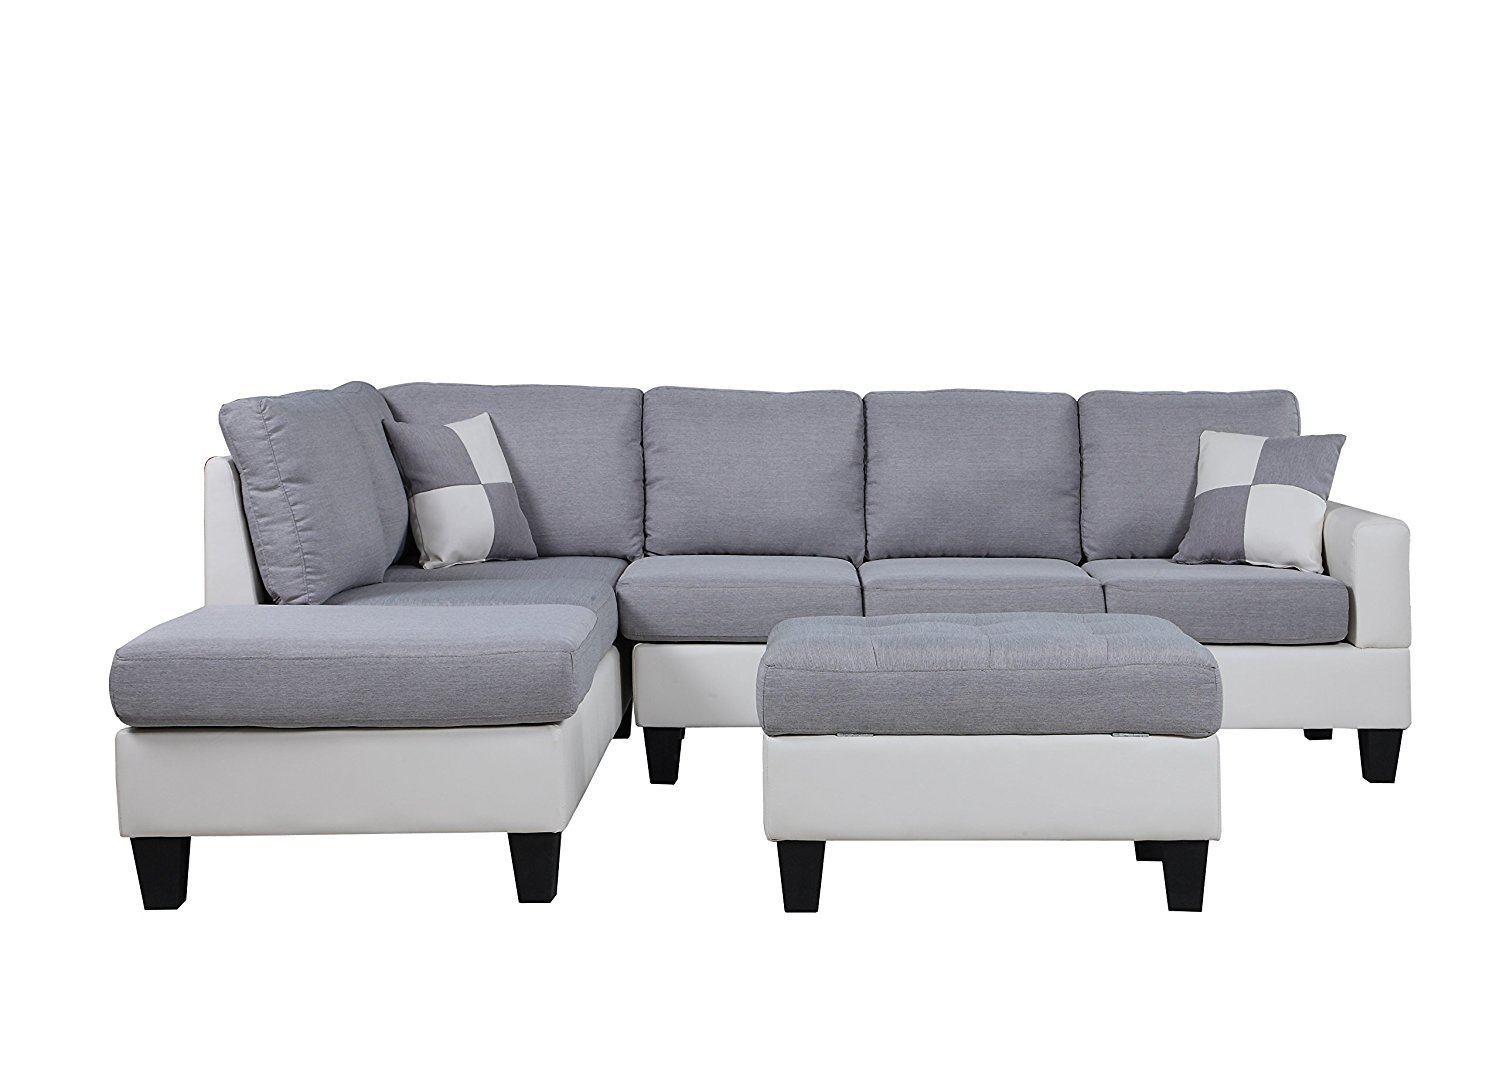 Classic 2 Tone Large Fabric Bonded Leather Living Room Sectional ...